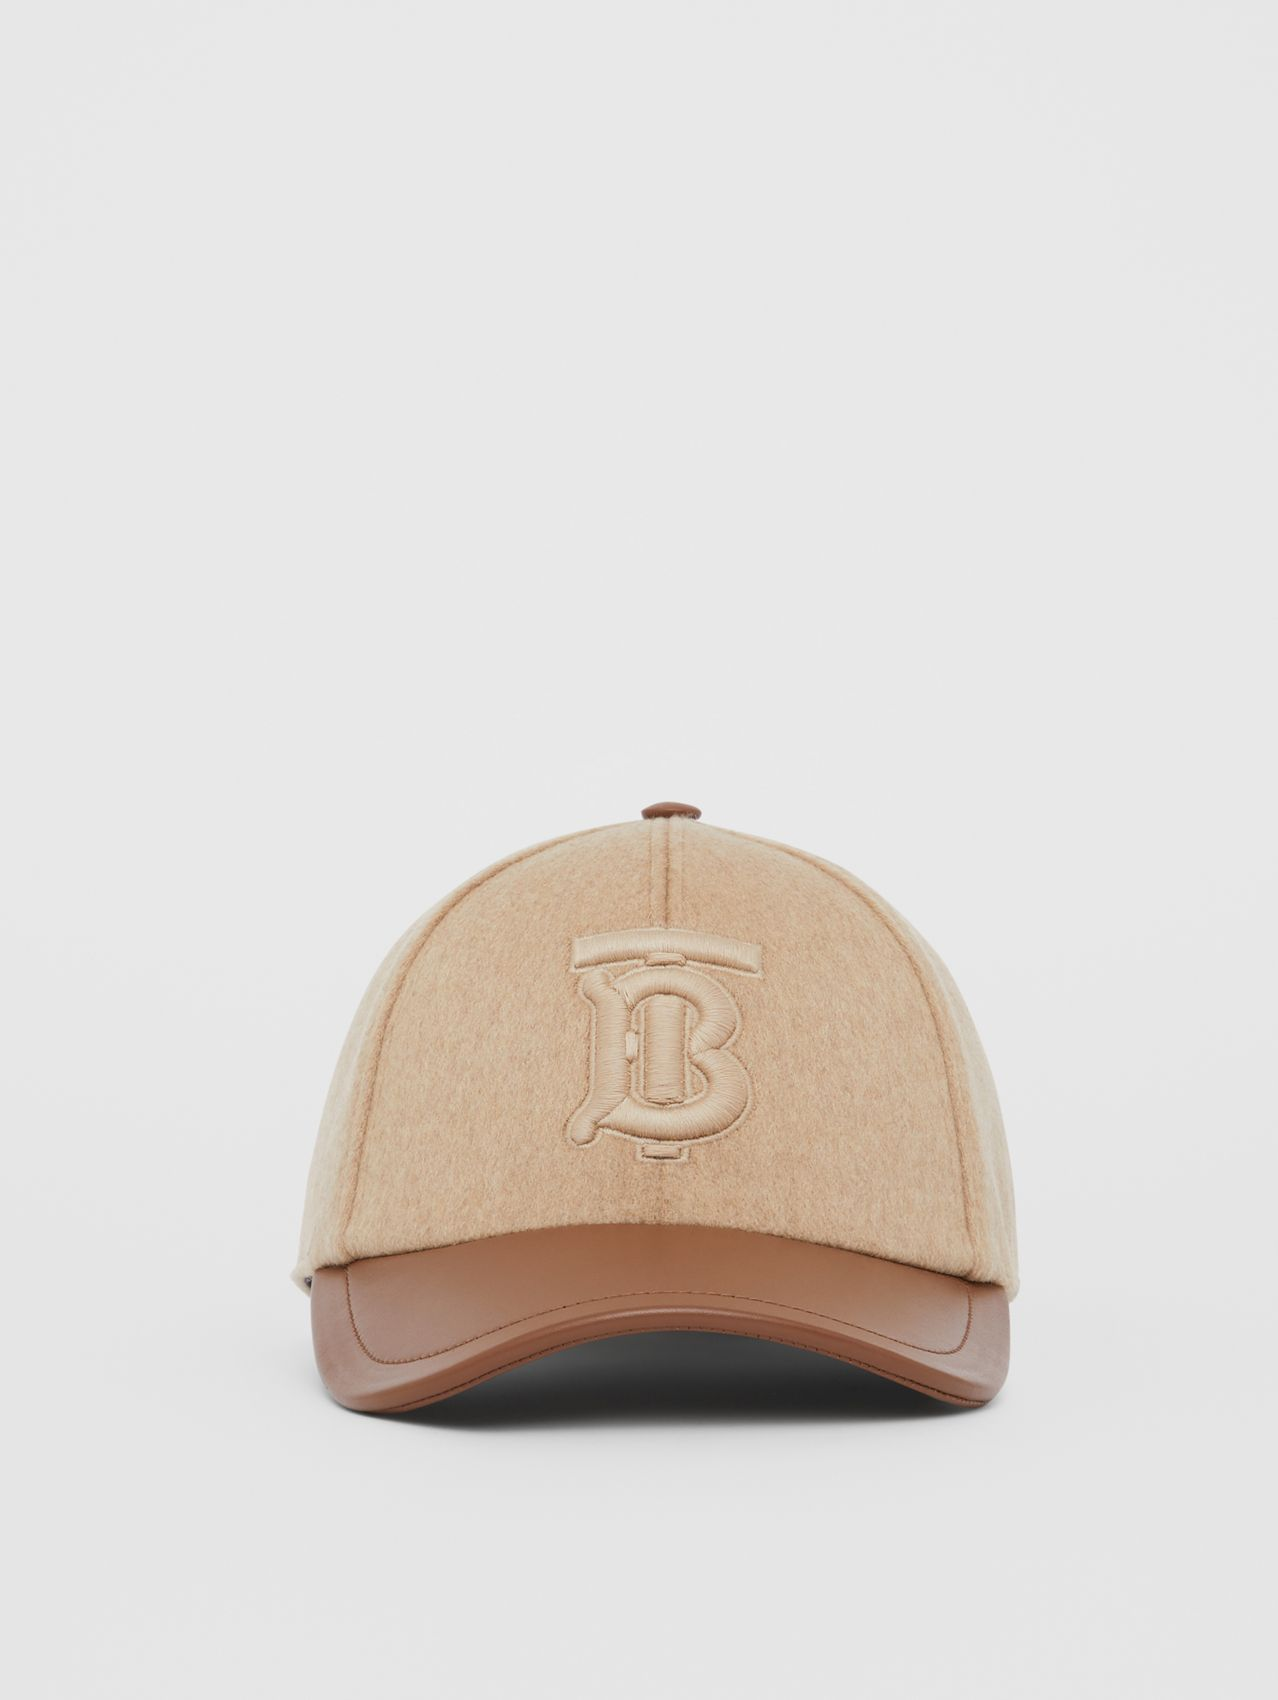 Monogram Motif Cashmere and Leather Baseball Cap in Camel